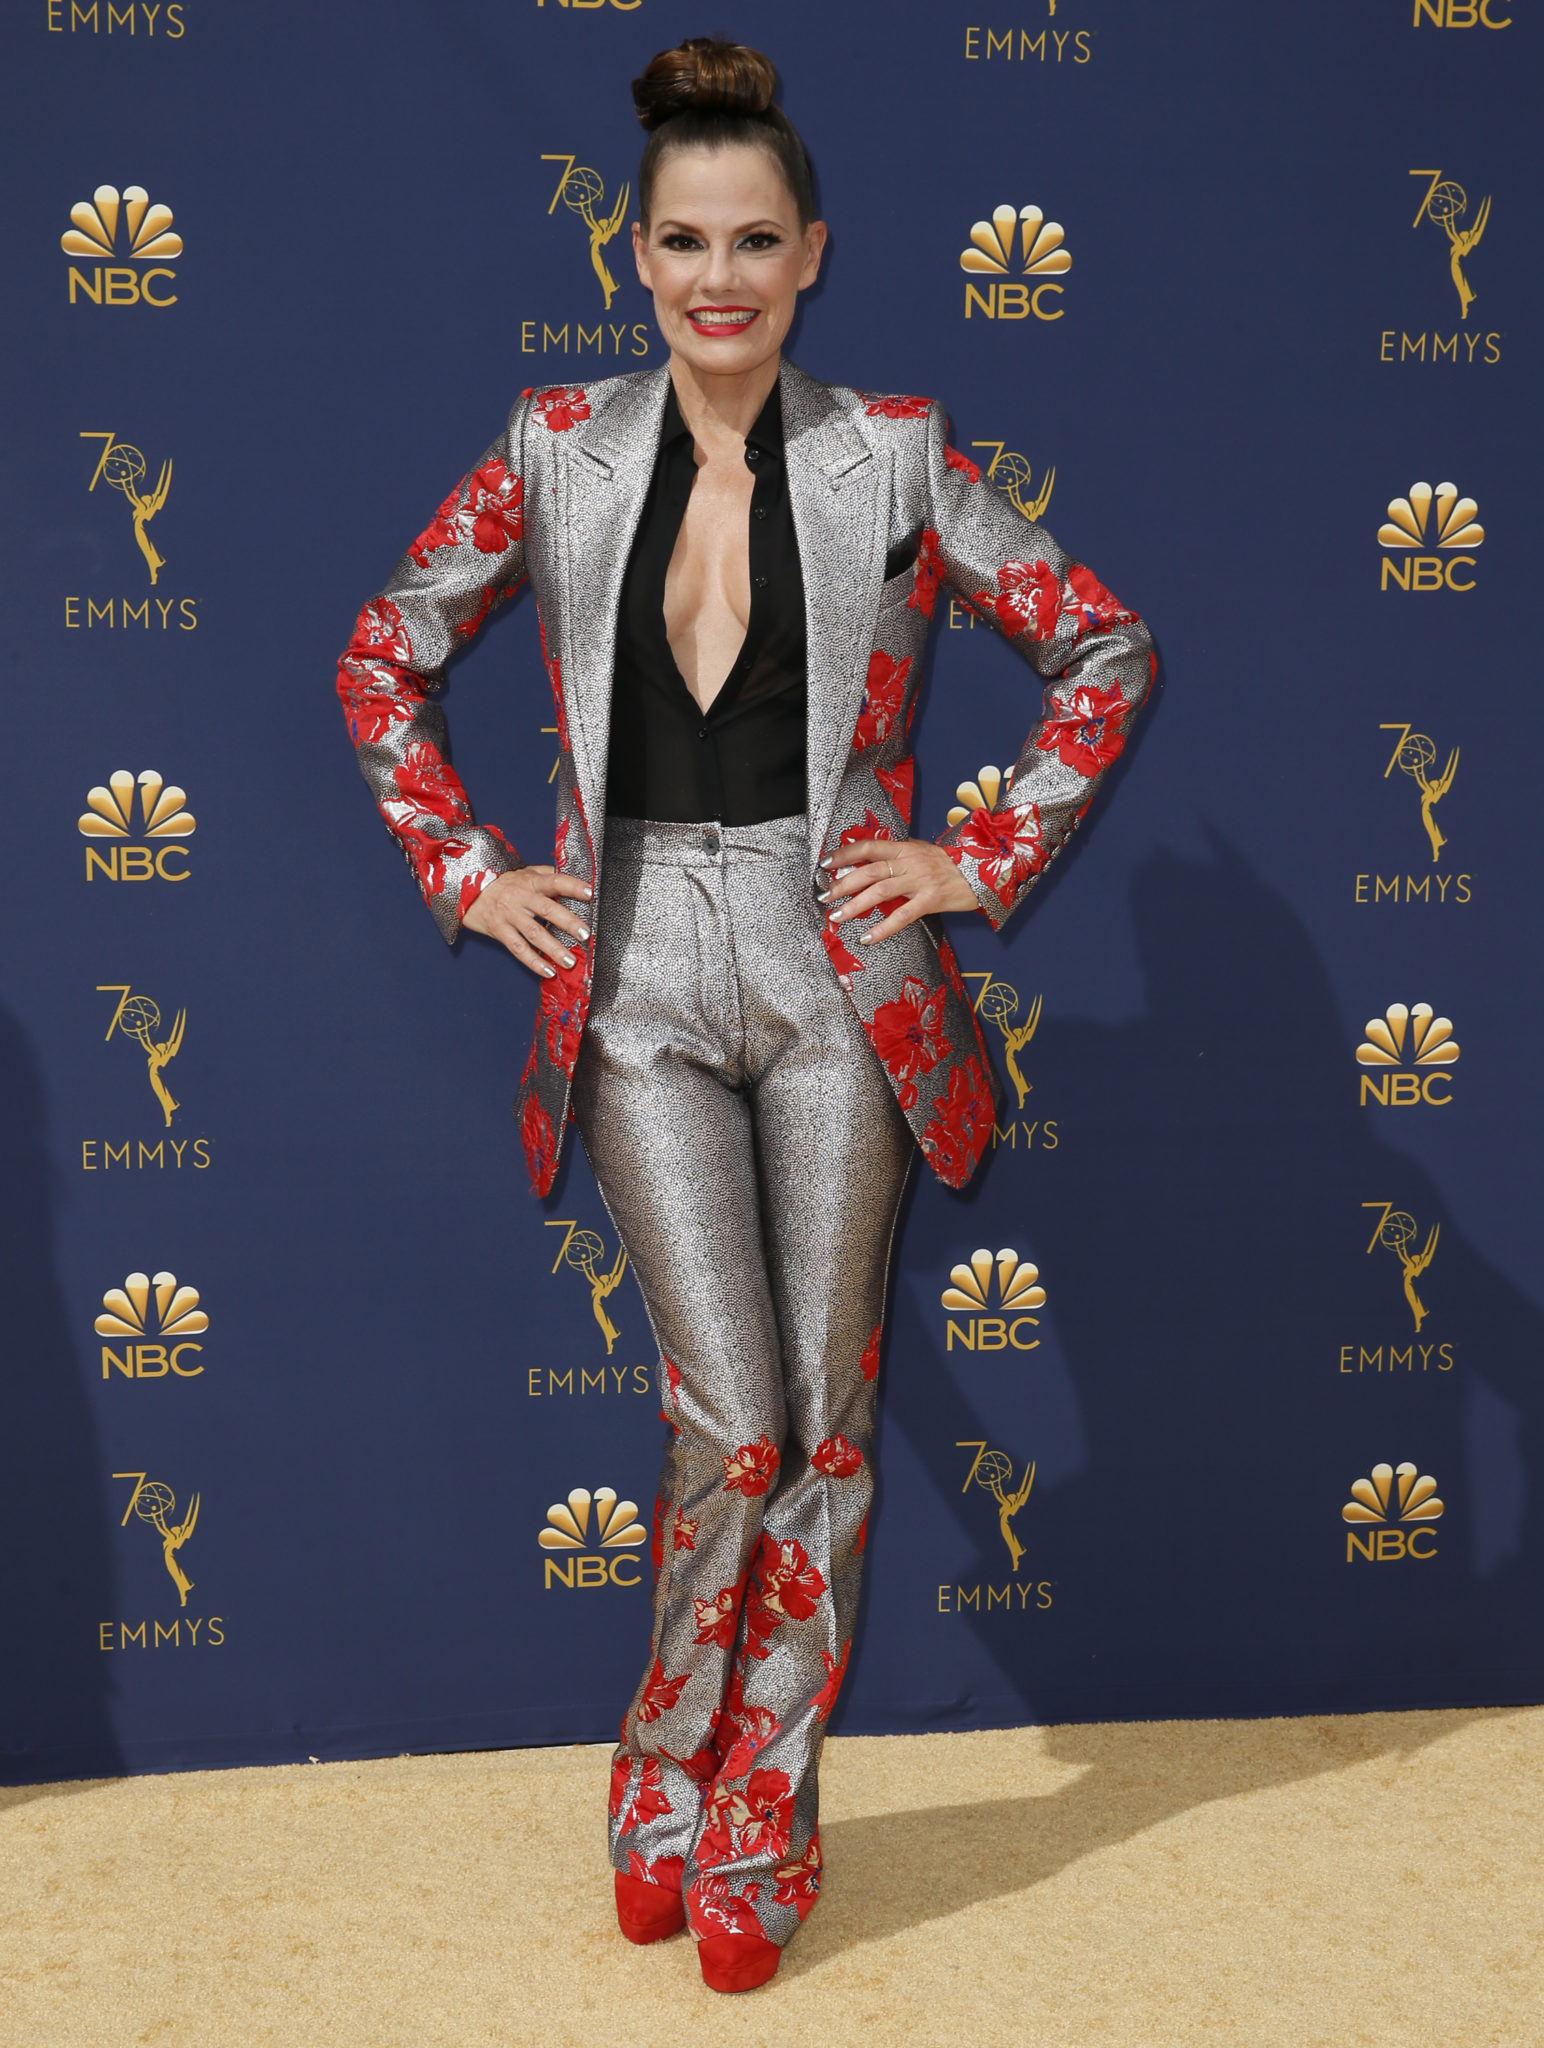 Suzanne Cryer Emmys 4Chion Lifestyle